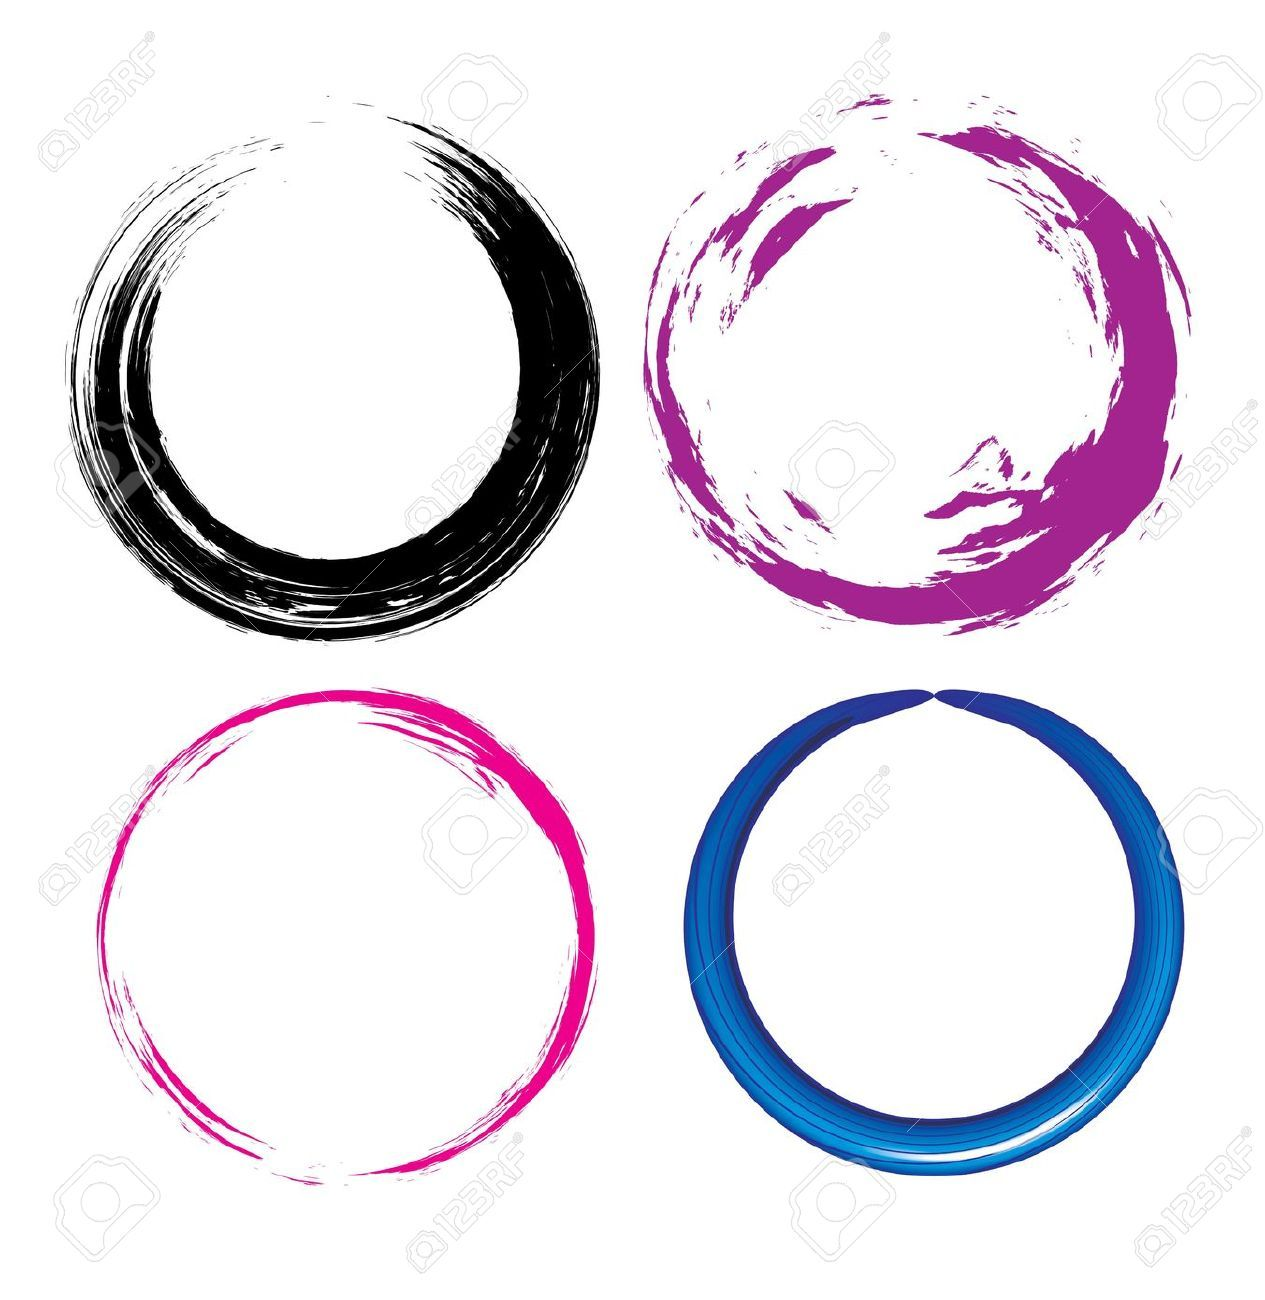 Enso circle drawing buscar con google ensocirculo zen illustration of four different grunge circle with place for your text vector art clipart and stock vectors biocorpaavc Images